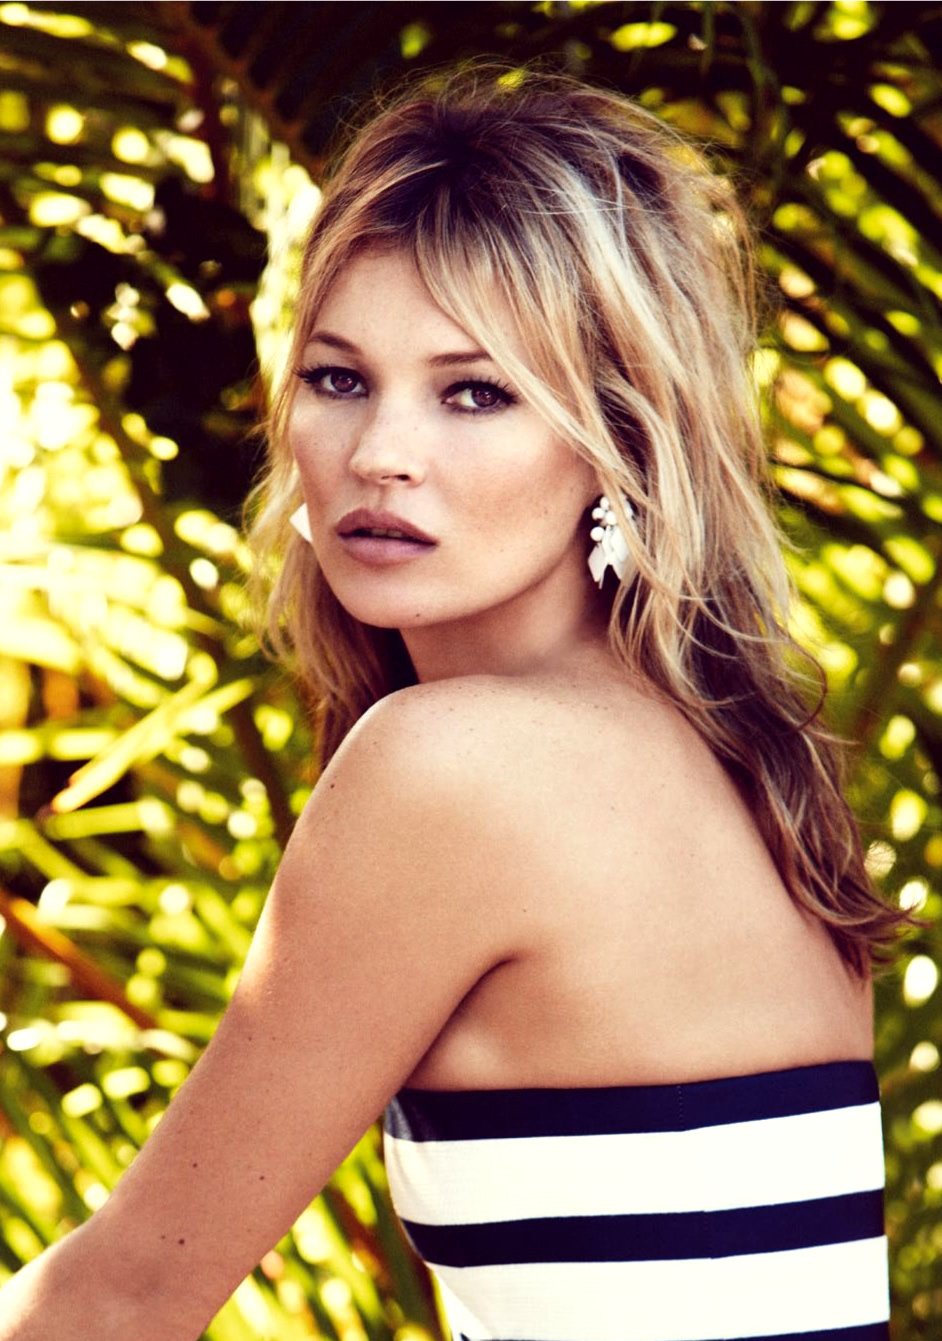 60s styled Kate Moss by Patrick Demarchelier for Vogue UK June 2013 1